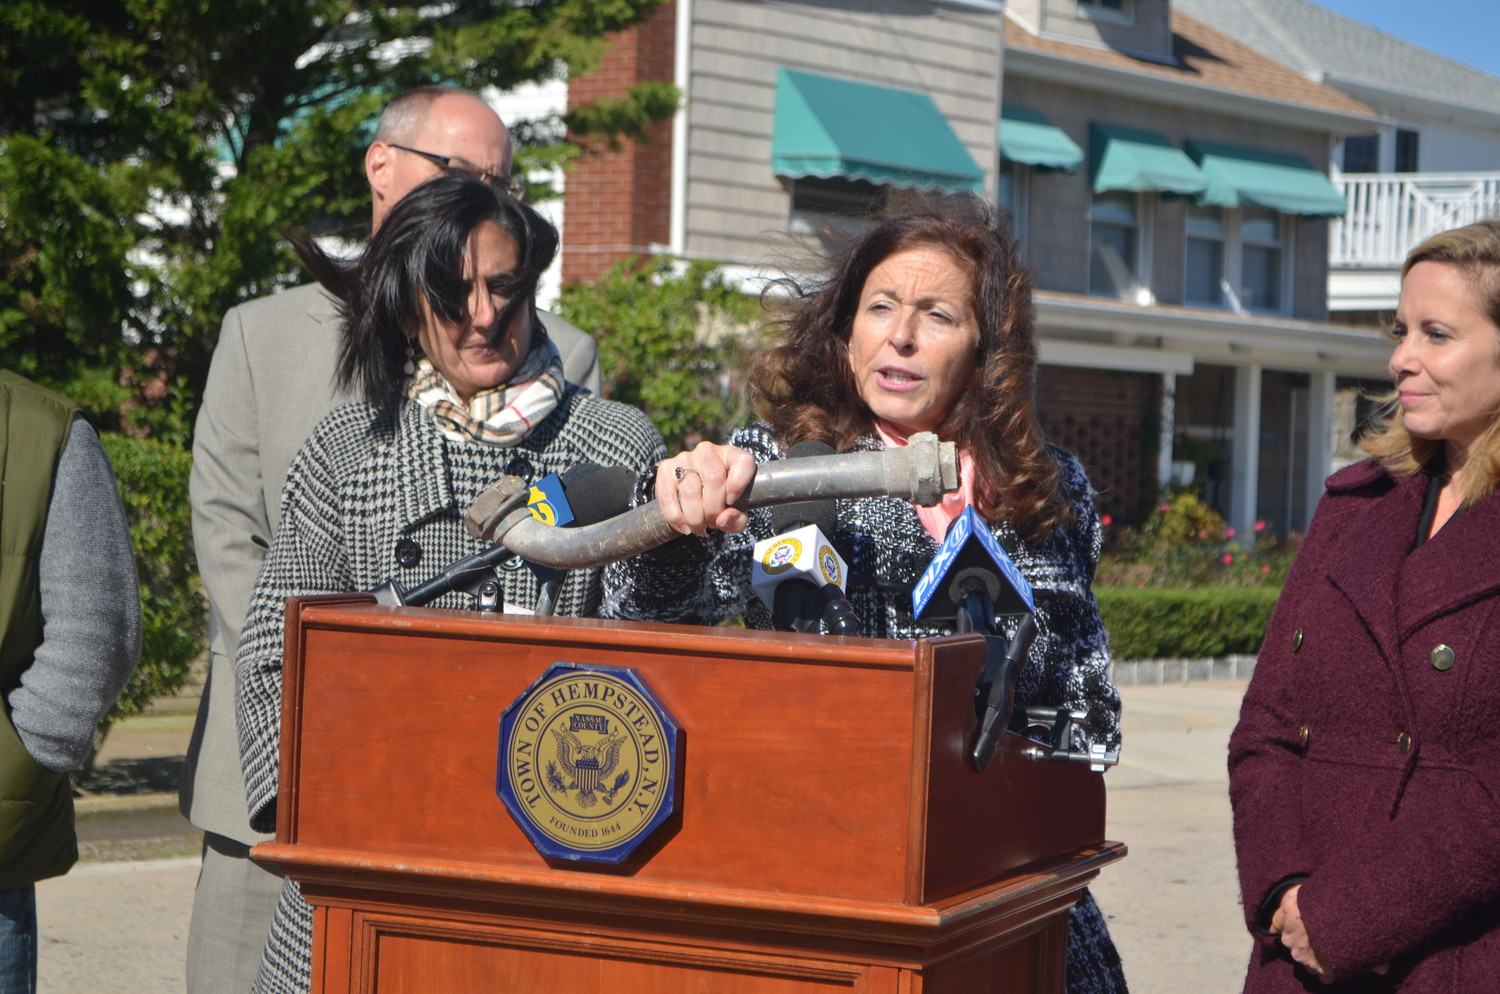 Adrienne Esposito, executive director of Citizens Campaign for the Environment, was joined by Town of Hempstead officials on Oct. 18 to announce that more than 500 lead water pipes in Point Lookout would be replaced with copper ones.